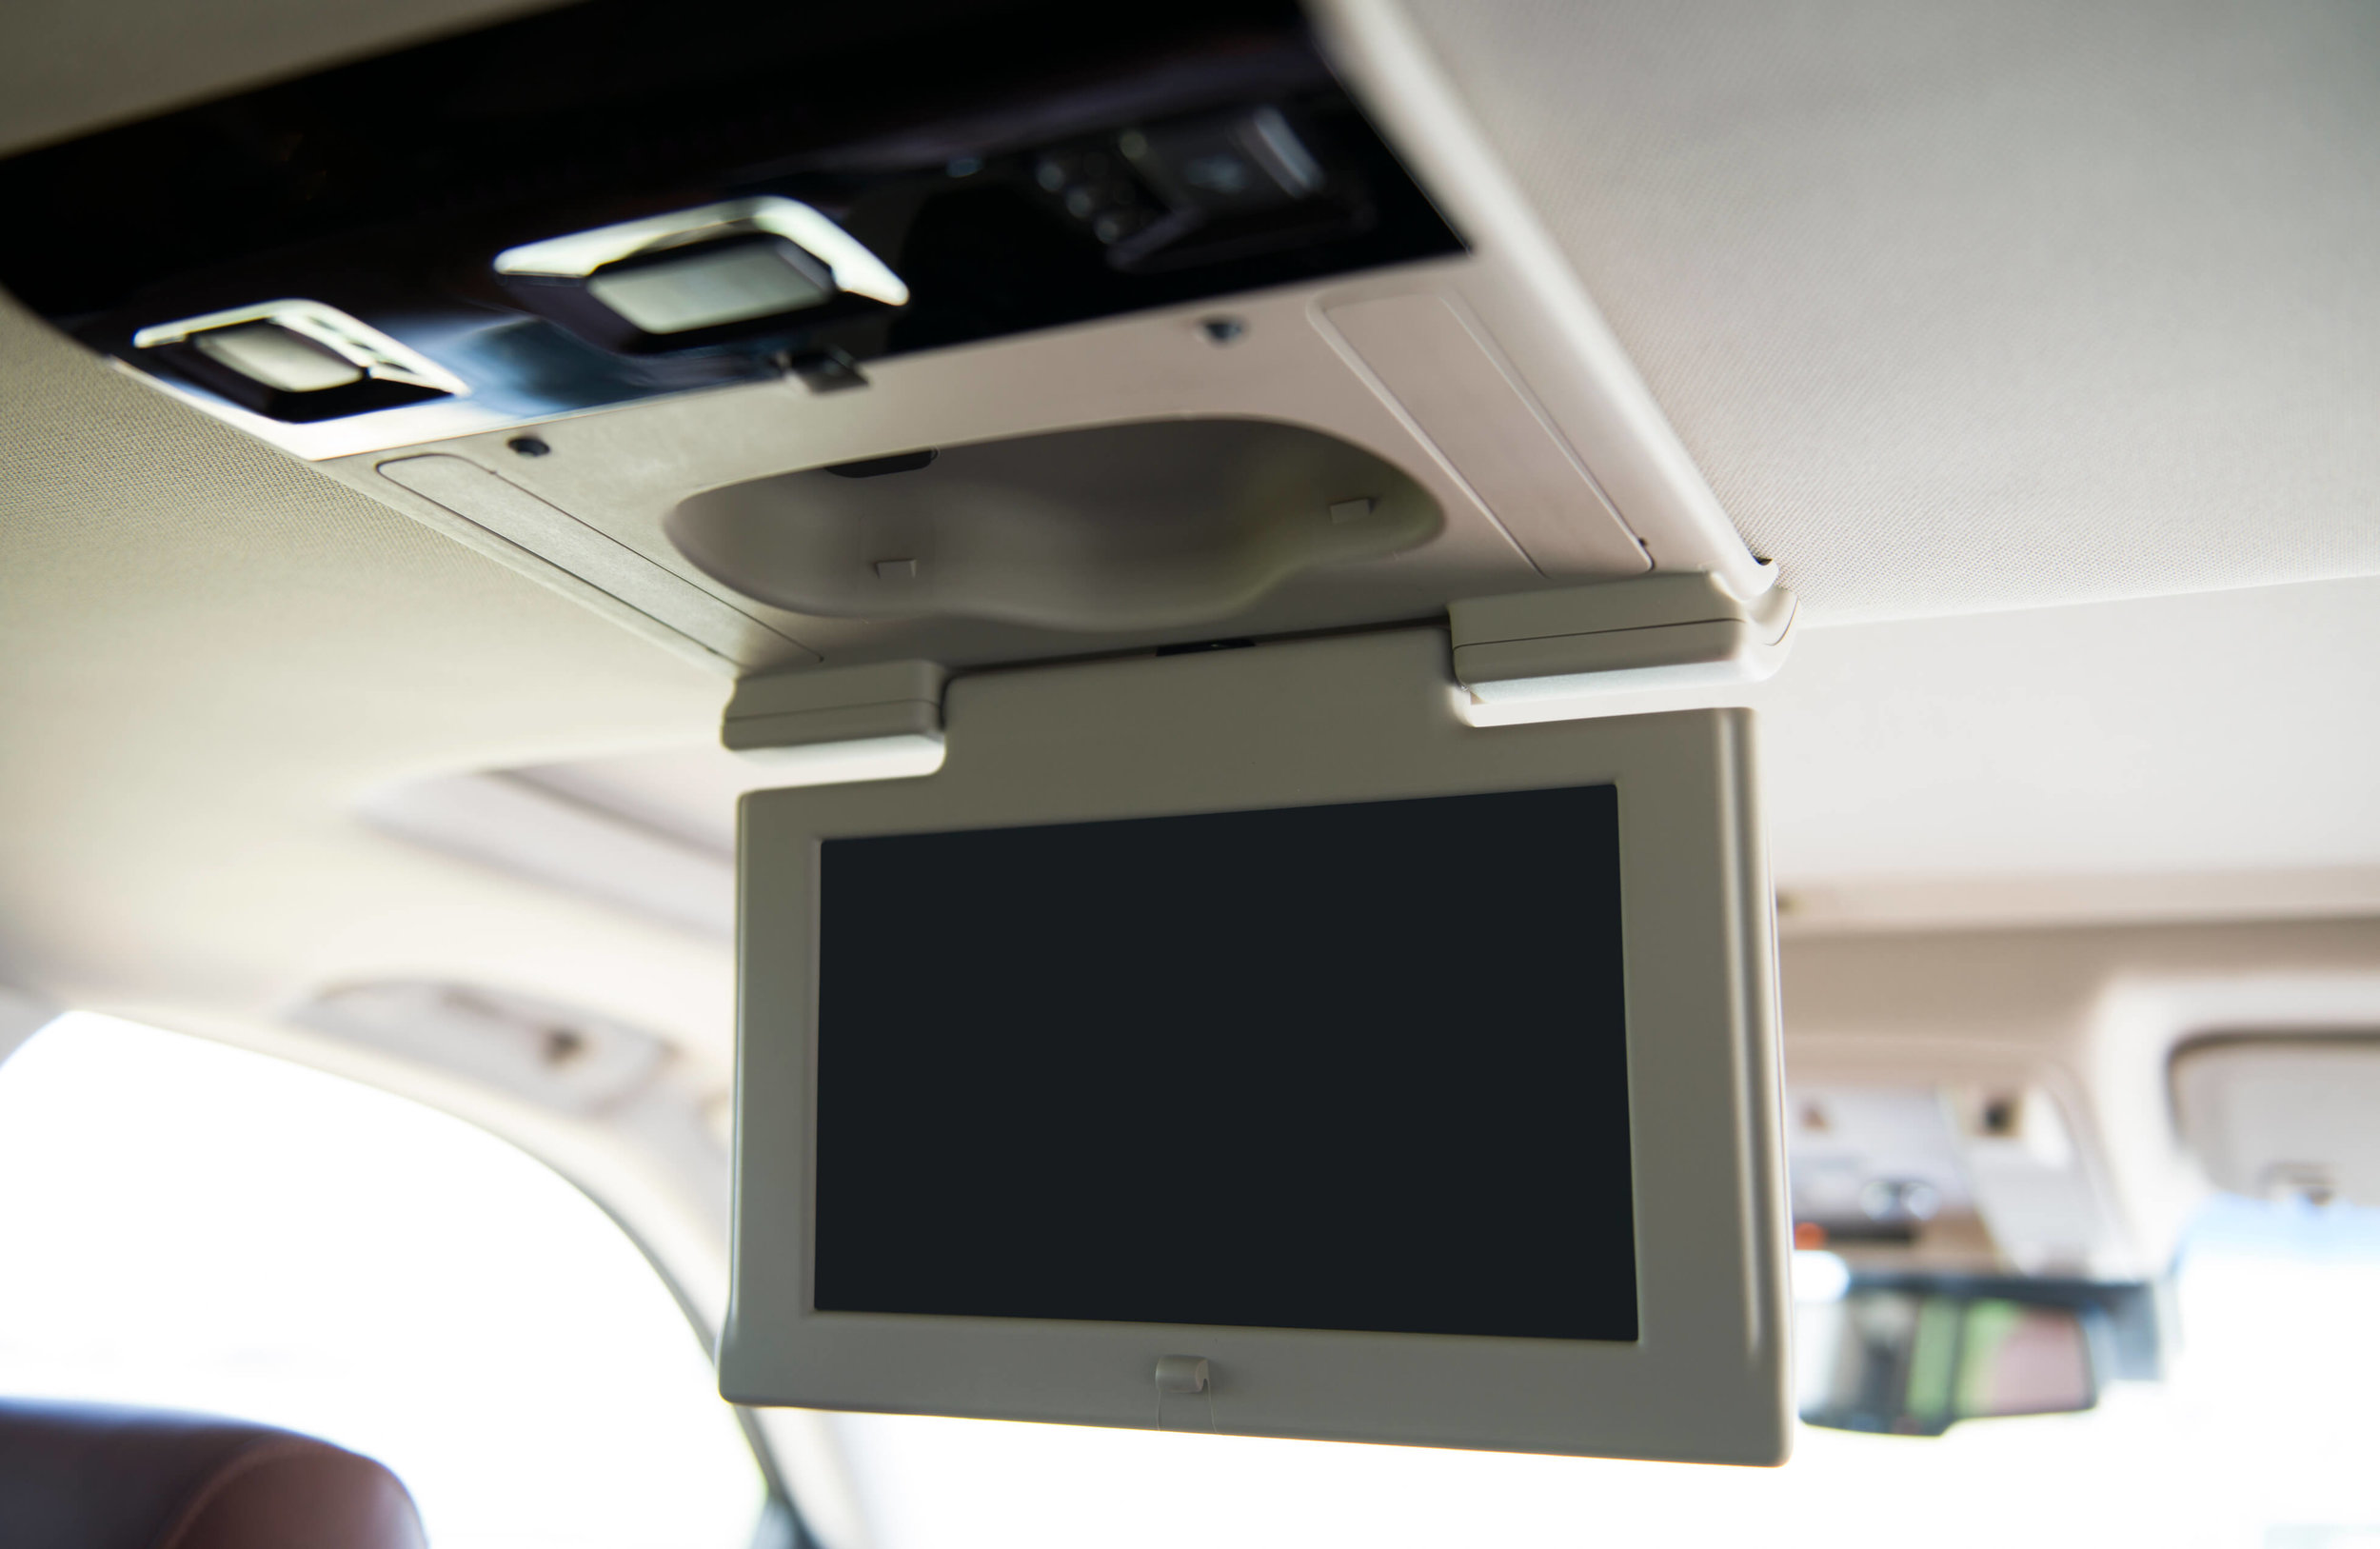 Get a headrest car video player from Car Stereo City in Kearny Mesa. We offer expert installation of car monitors and DVD players to make family road-trips go by in a jiff!